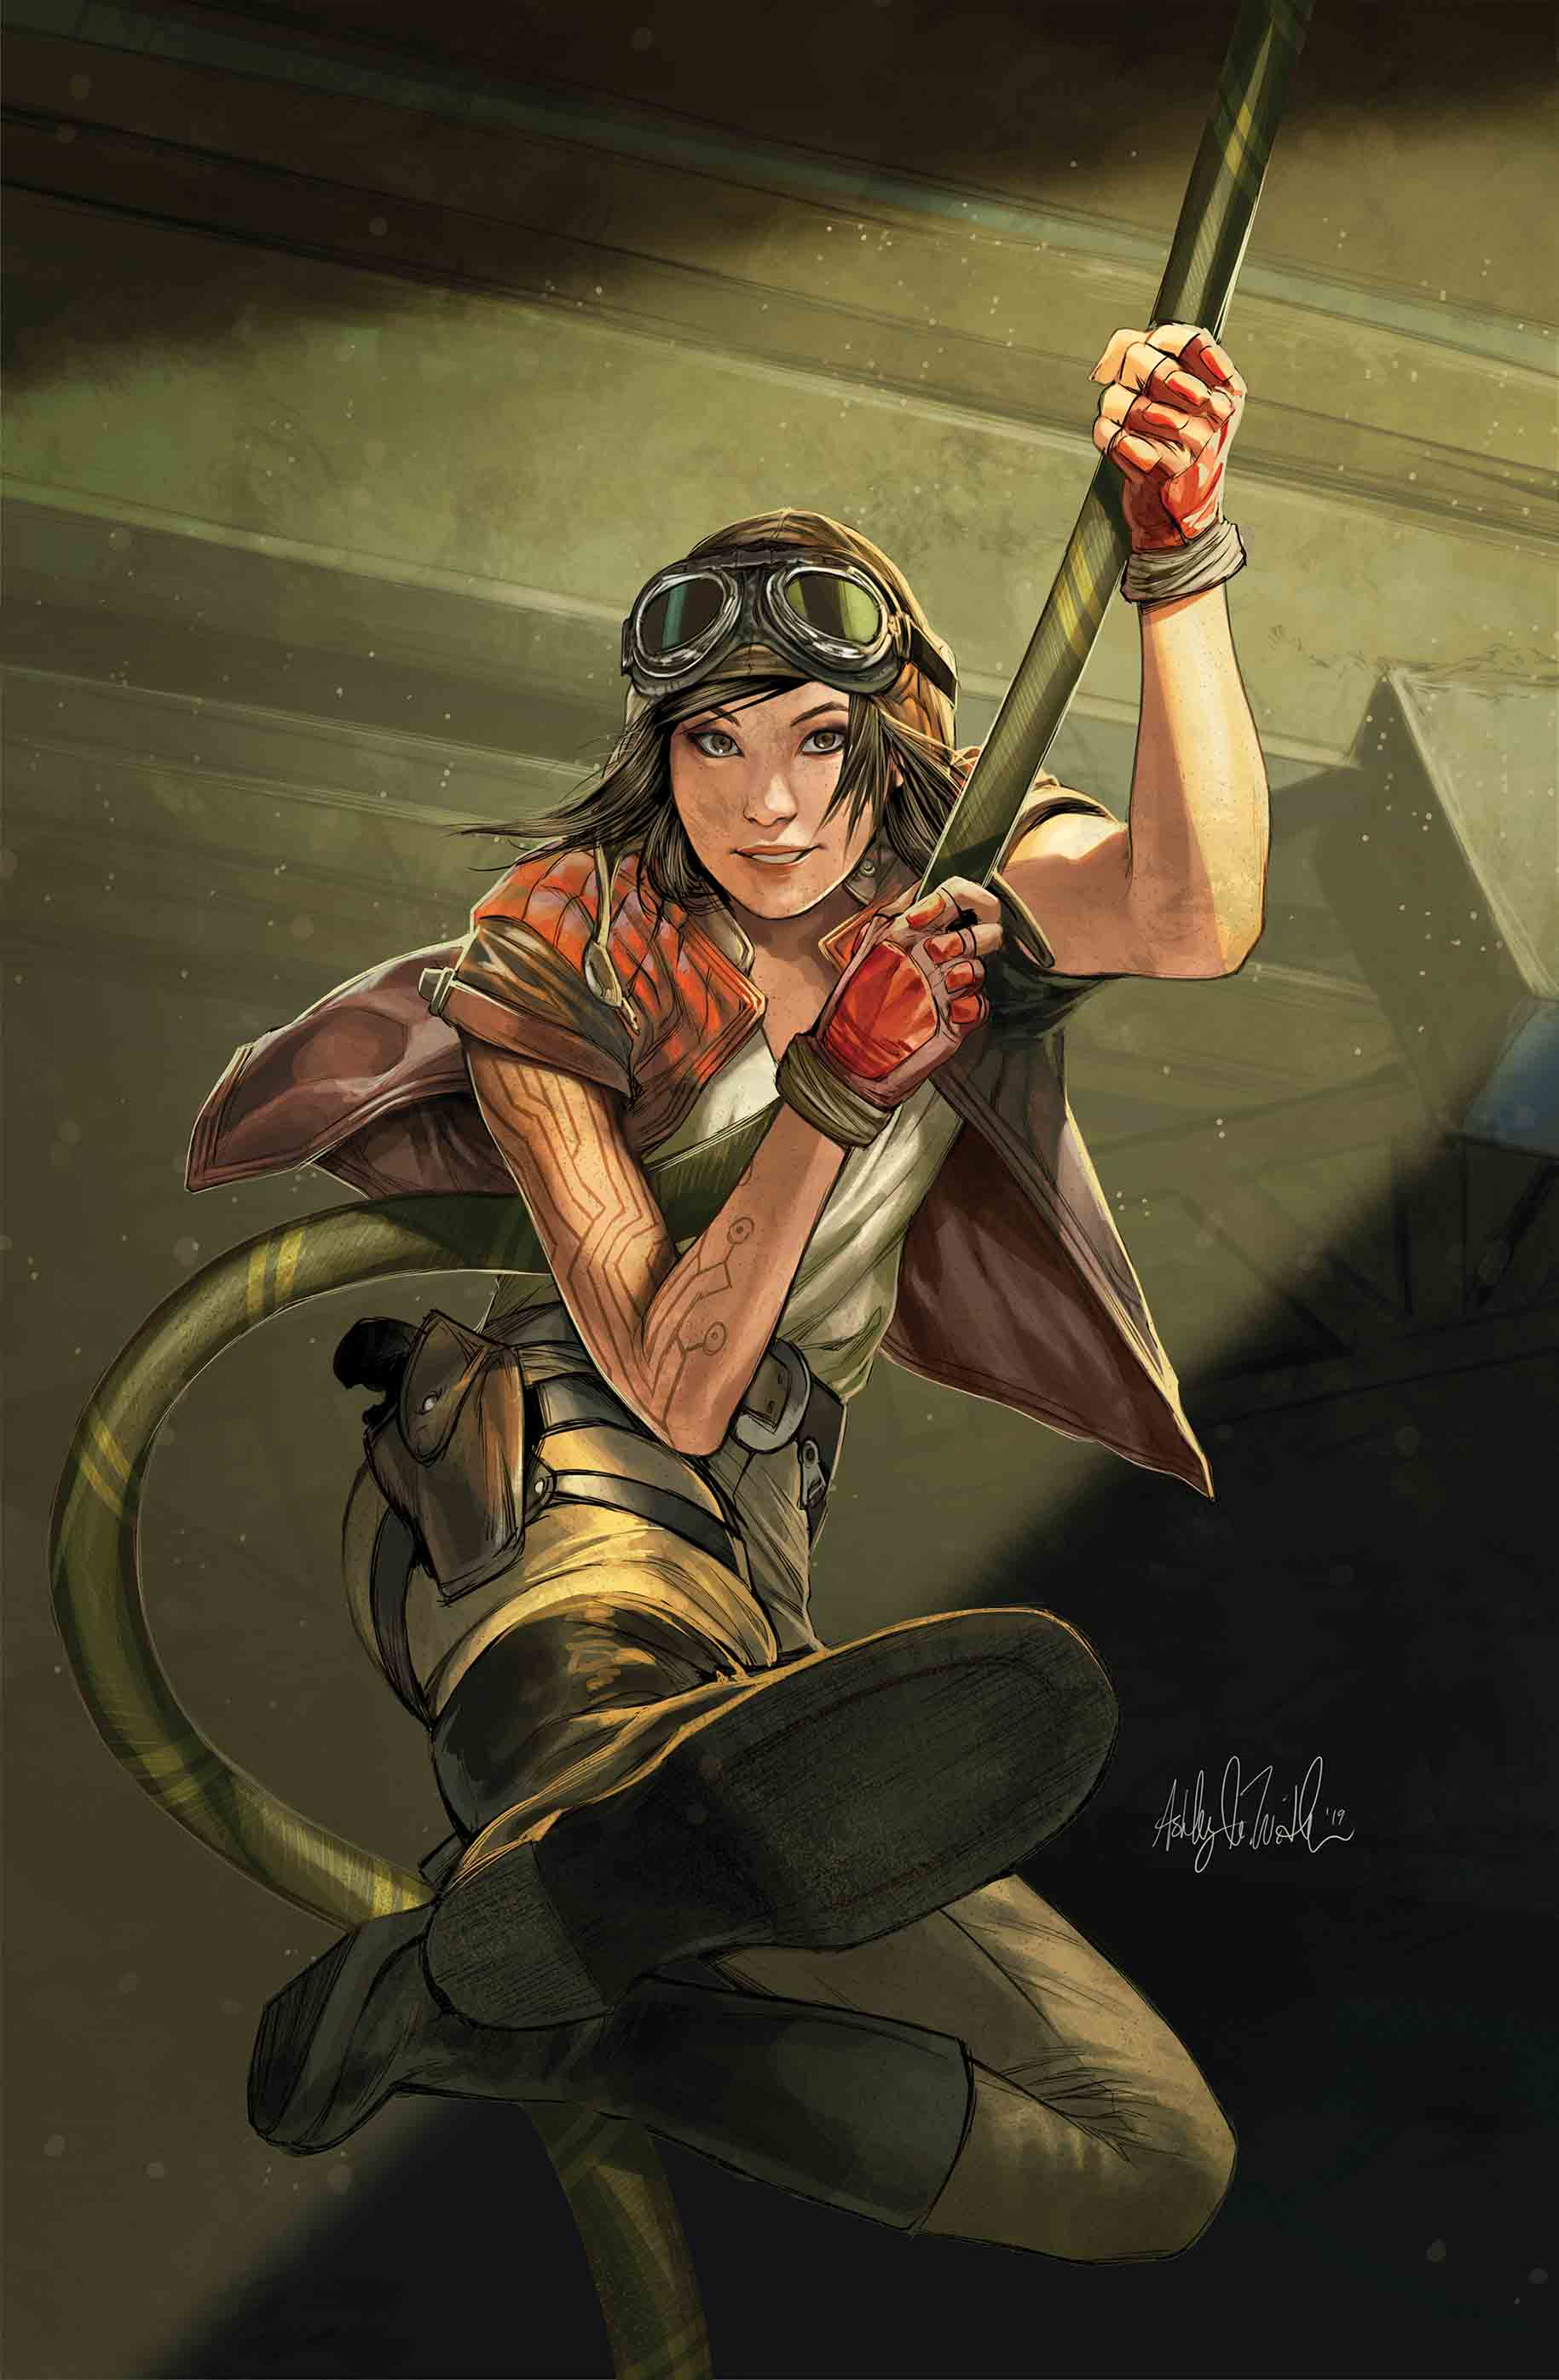 Star Wars - Docteur Aphra 33 - Doctor Aphra 33